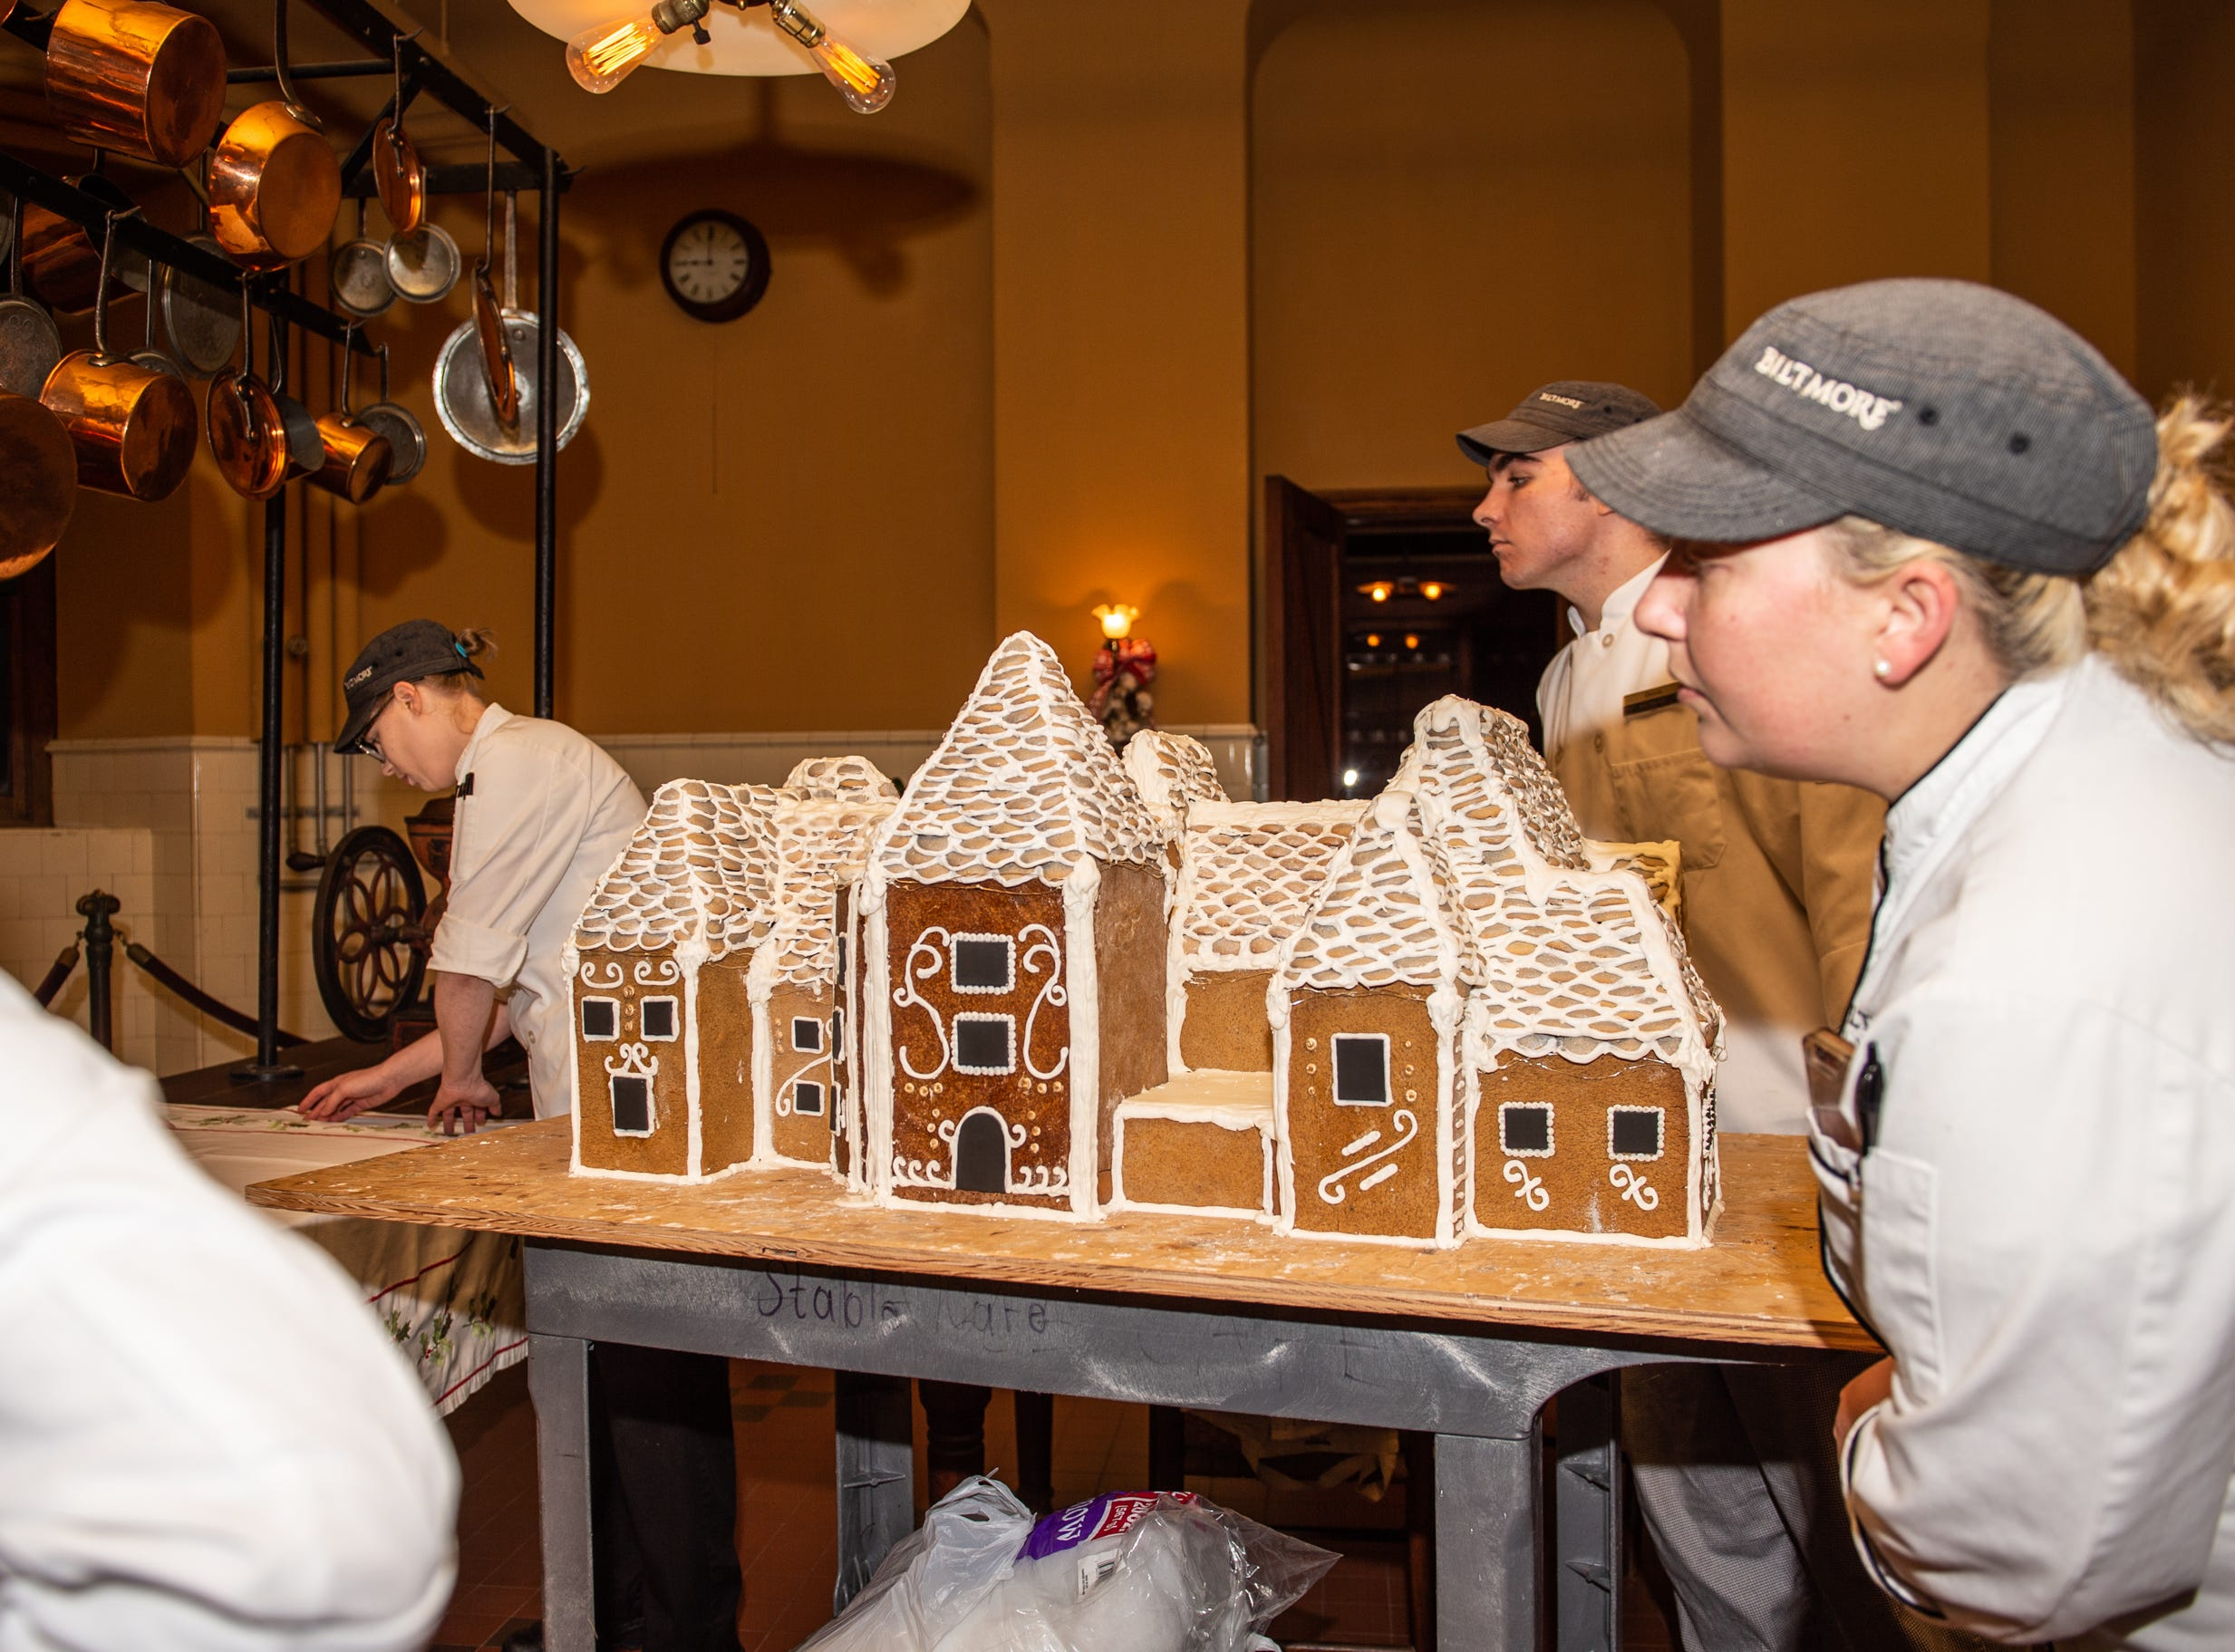 Biltmore pastry chef Julie Scheibel, right, helps move the gingerbread house into place in the Biltmore House kitchen the morning of Nov. 2, 2018.